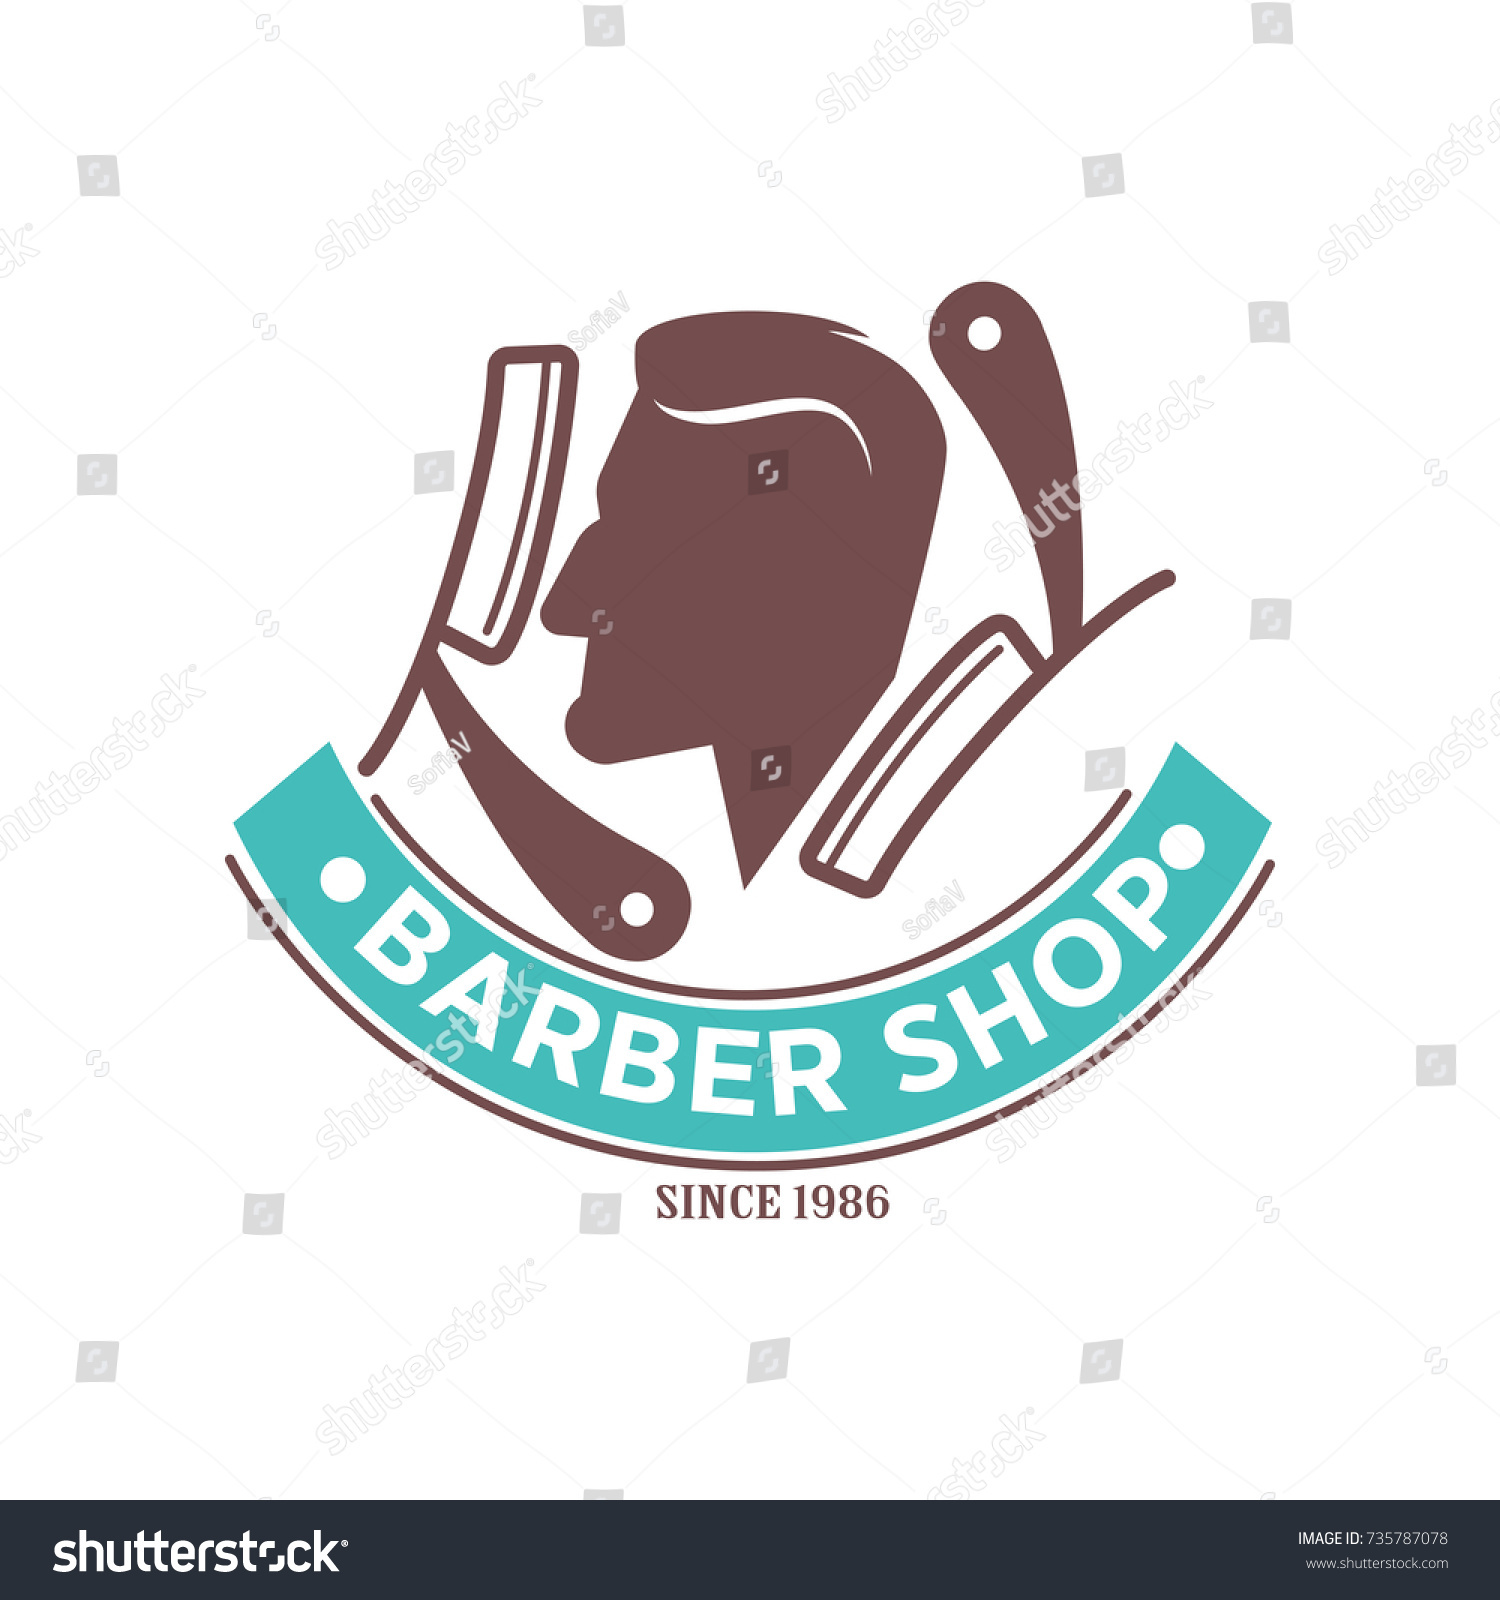 Logo Salon De Coiffure Royalty Free Stock Illustration Of Barber Shop Logo Icon Man Head